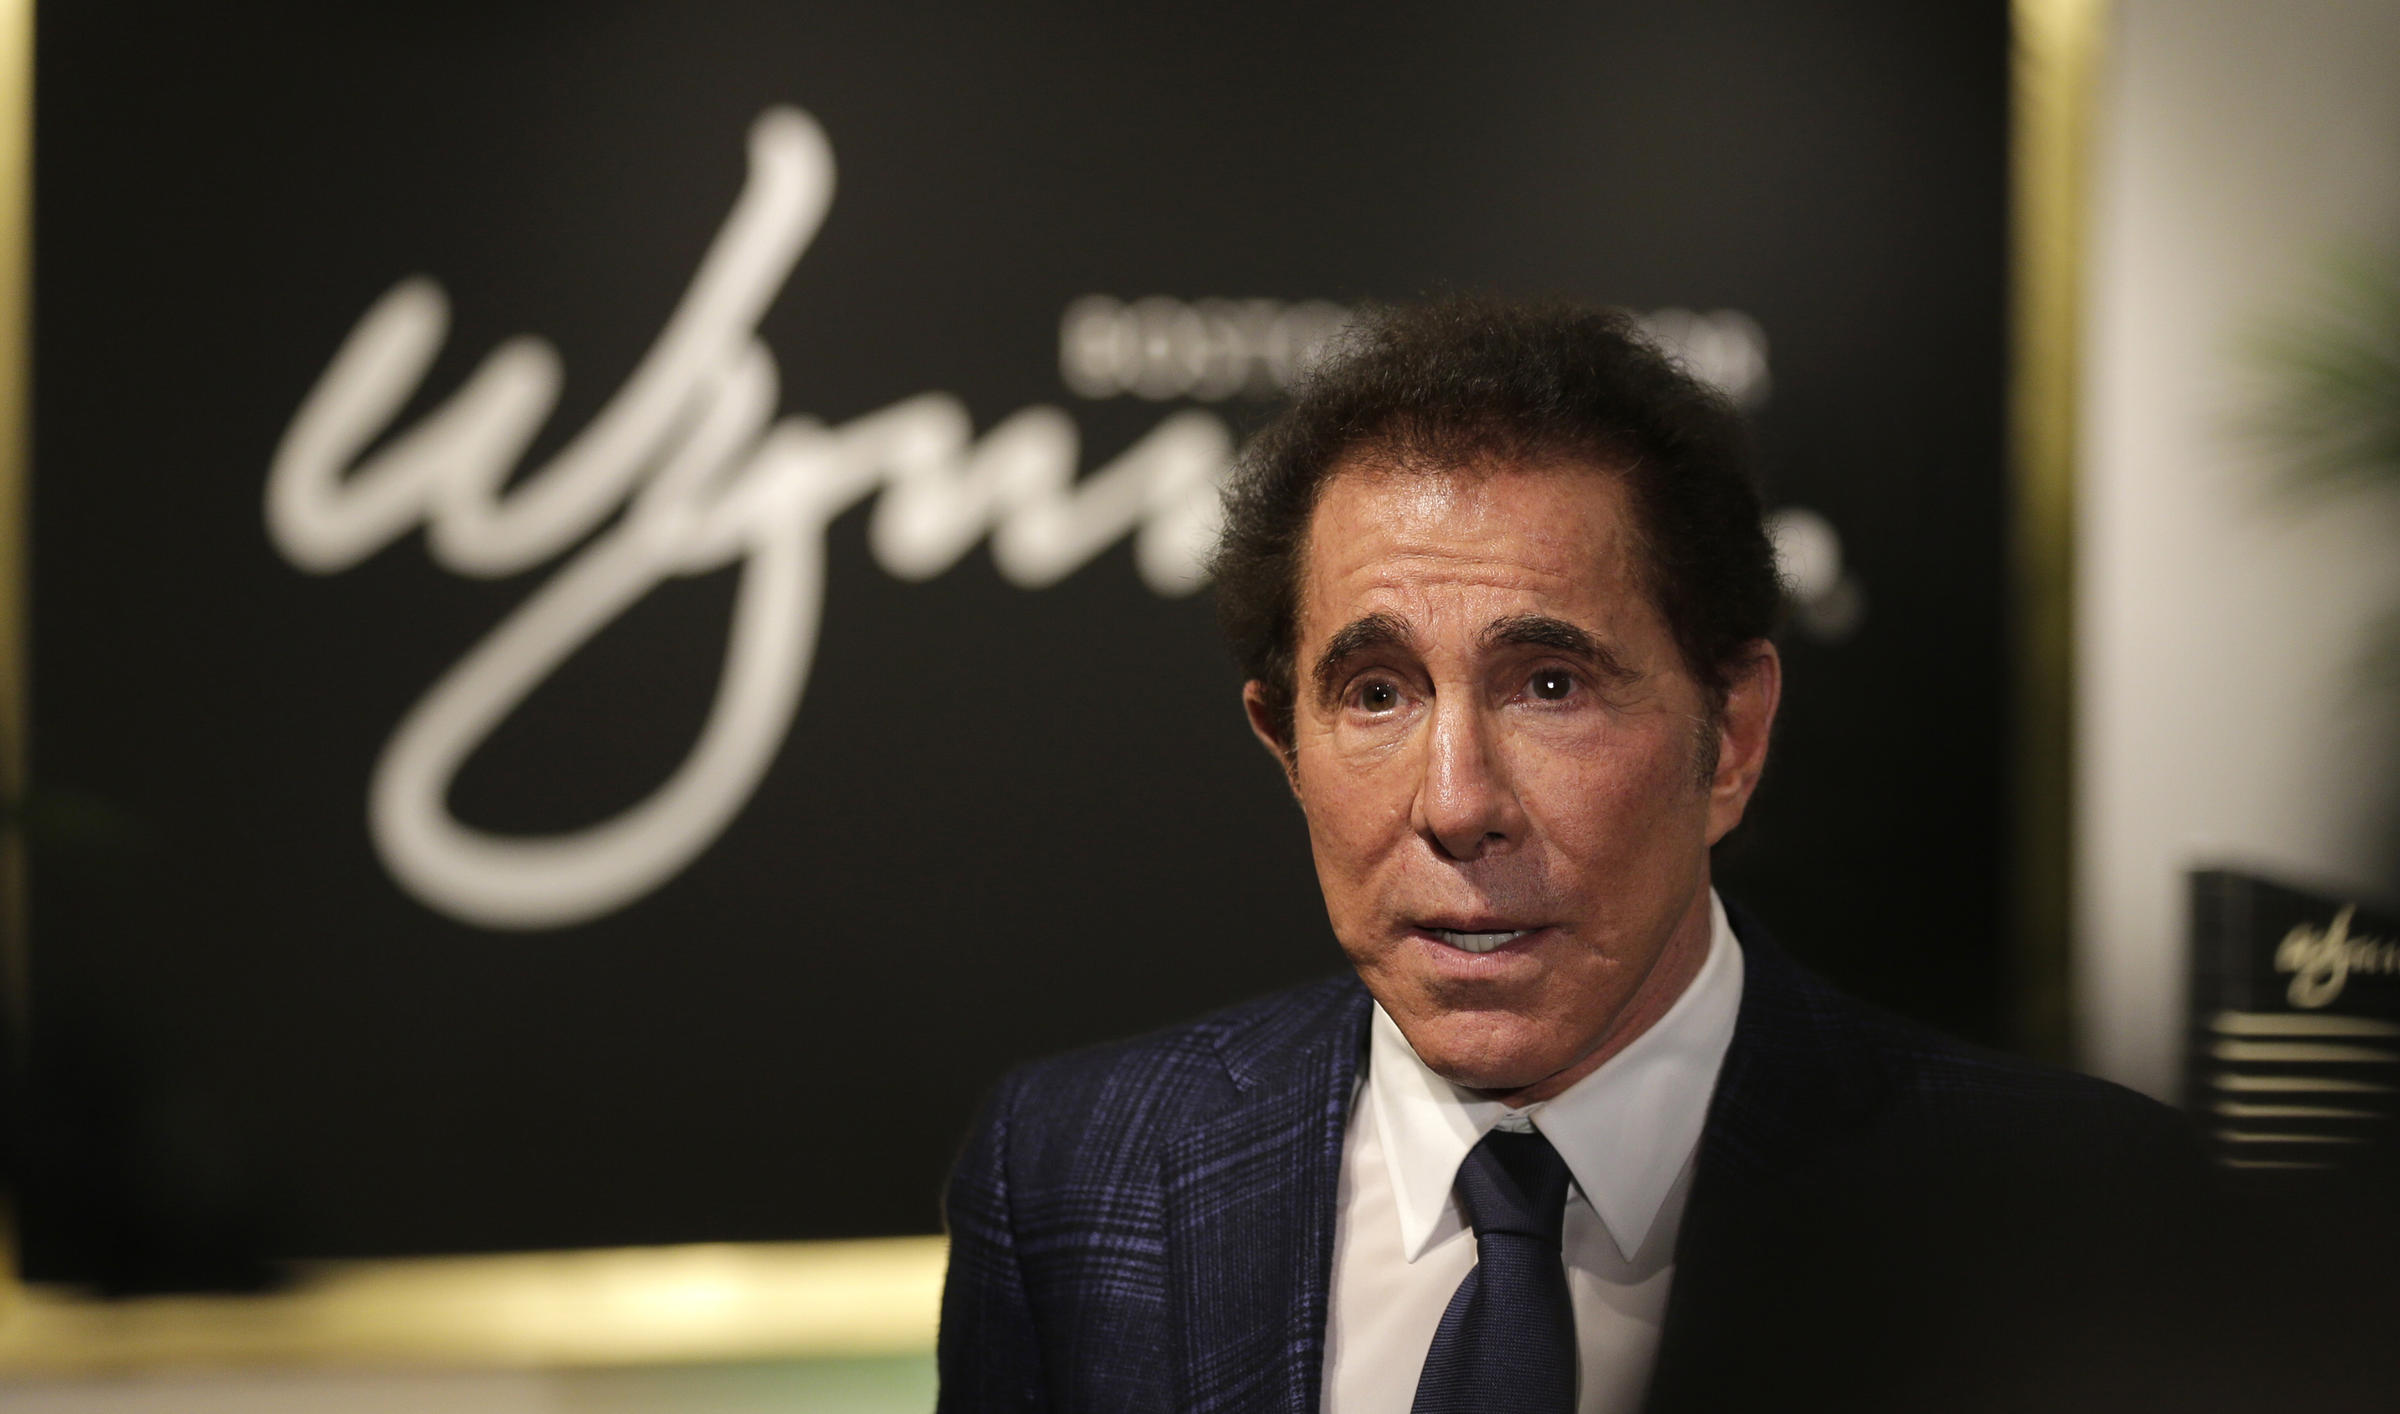 Wisconsin Republican Party donating money it got from Wynn